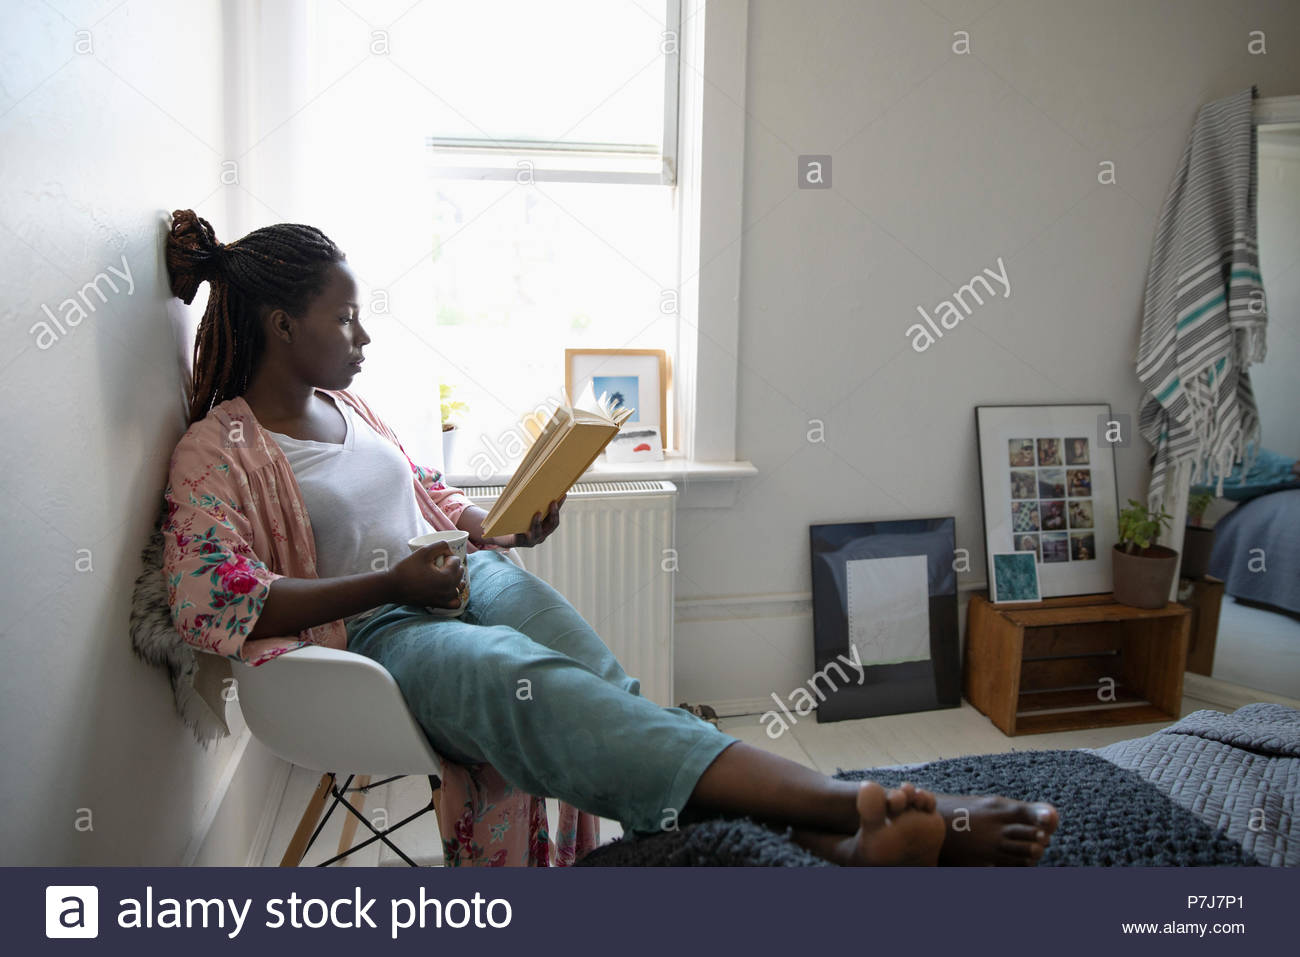 Young woman relaxing, drinking coffee and reading book in bedroom Stock Photo